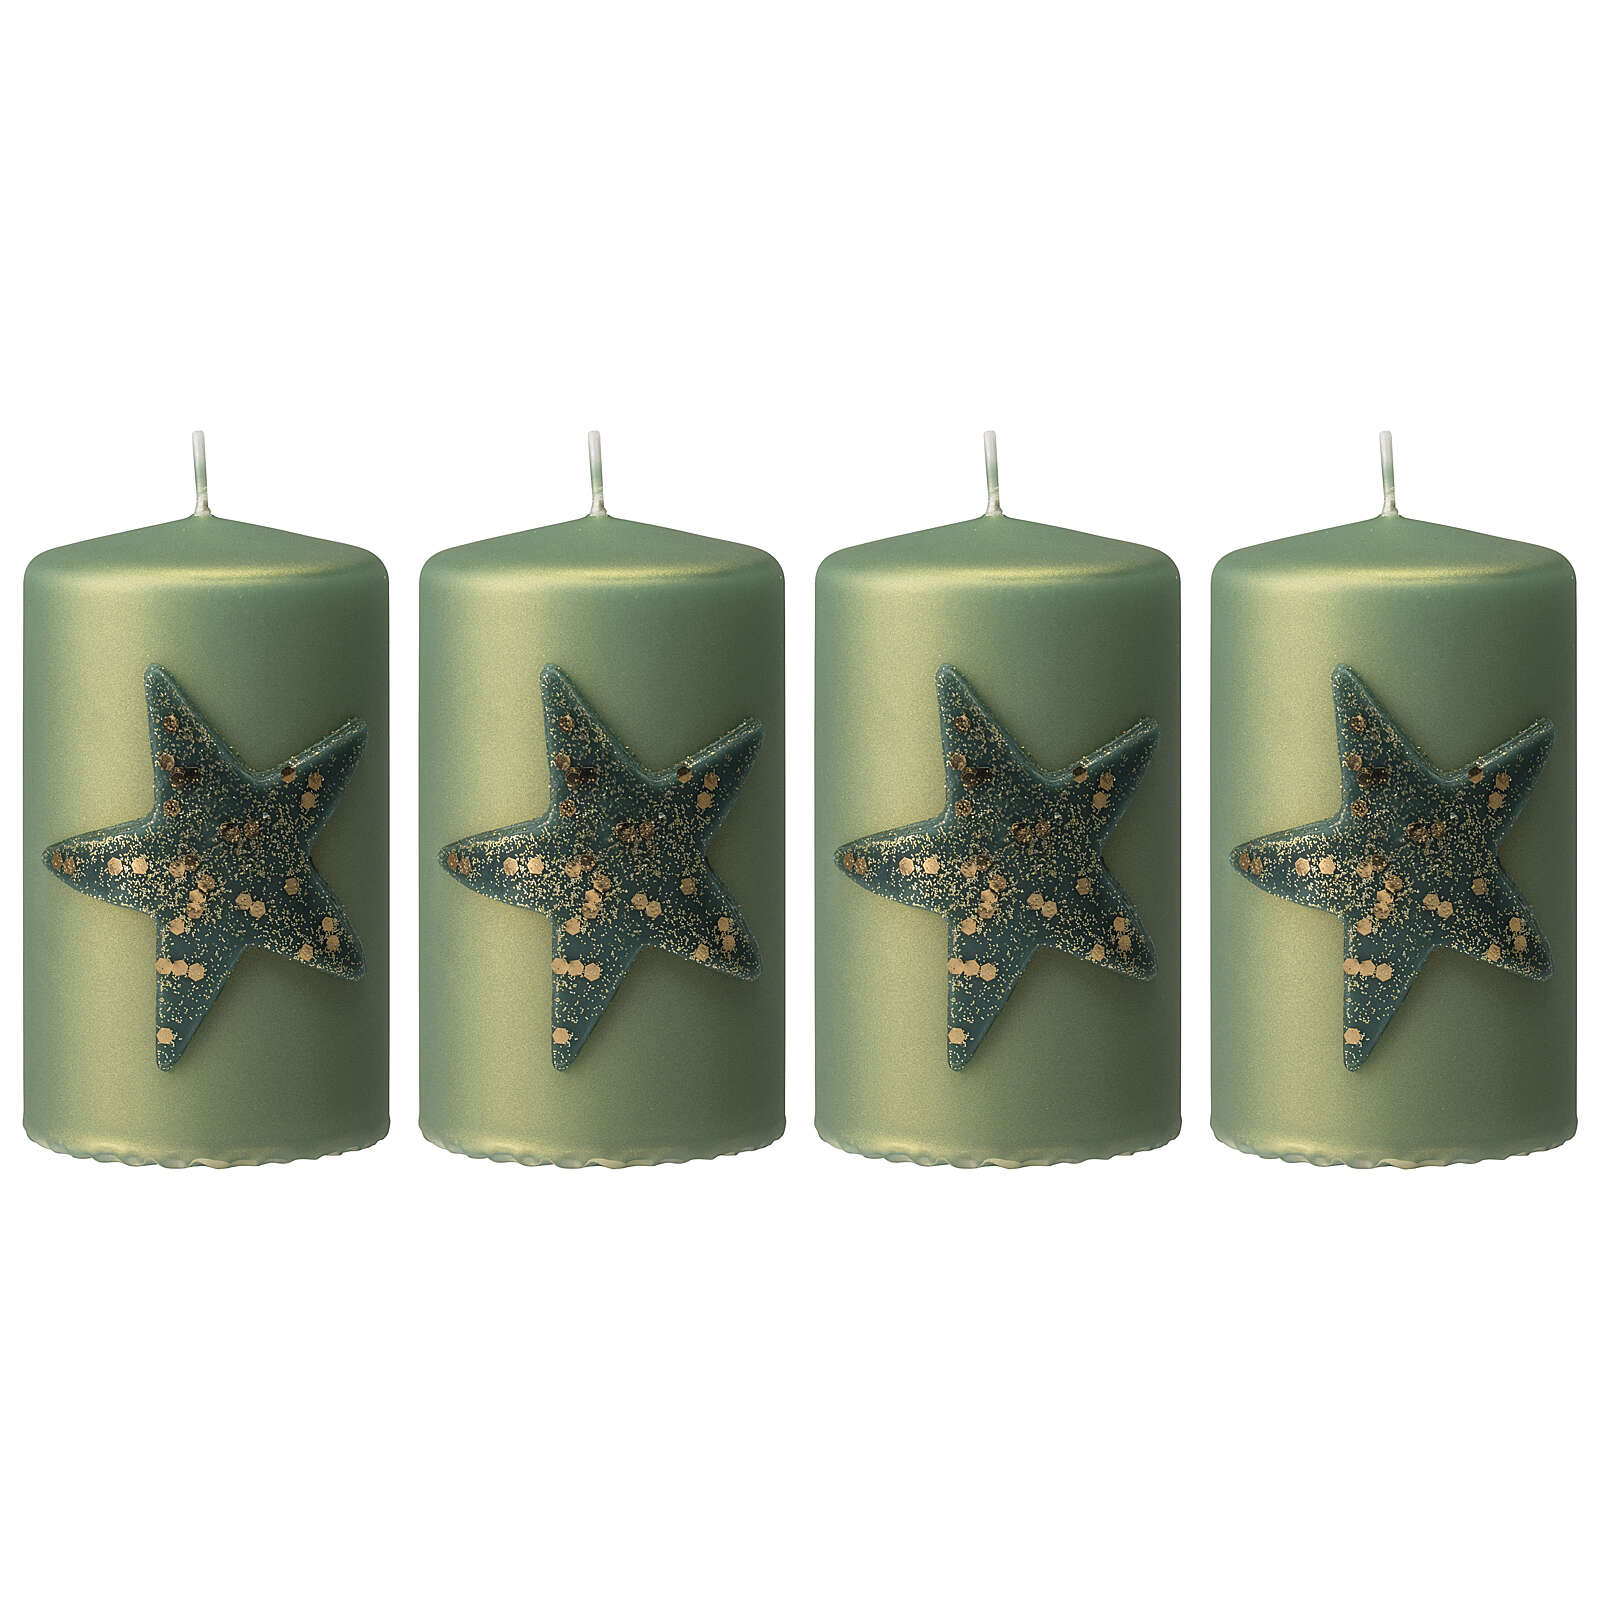 Green Christmas candles, set of 4, glittery star, 100x60 mm 3